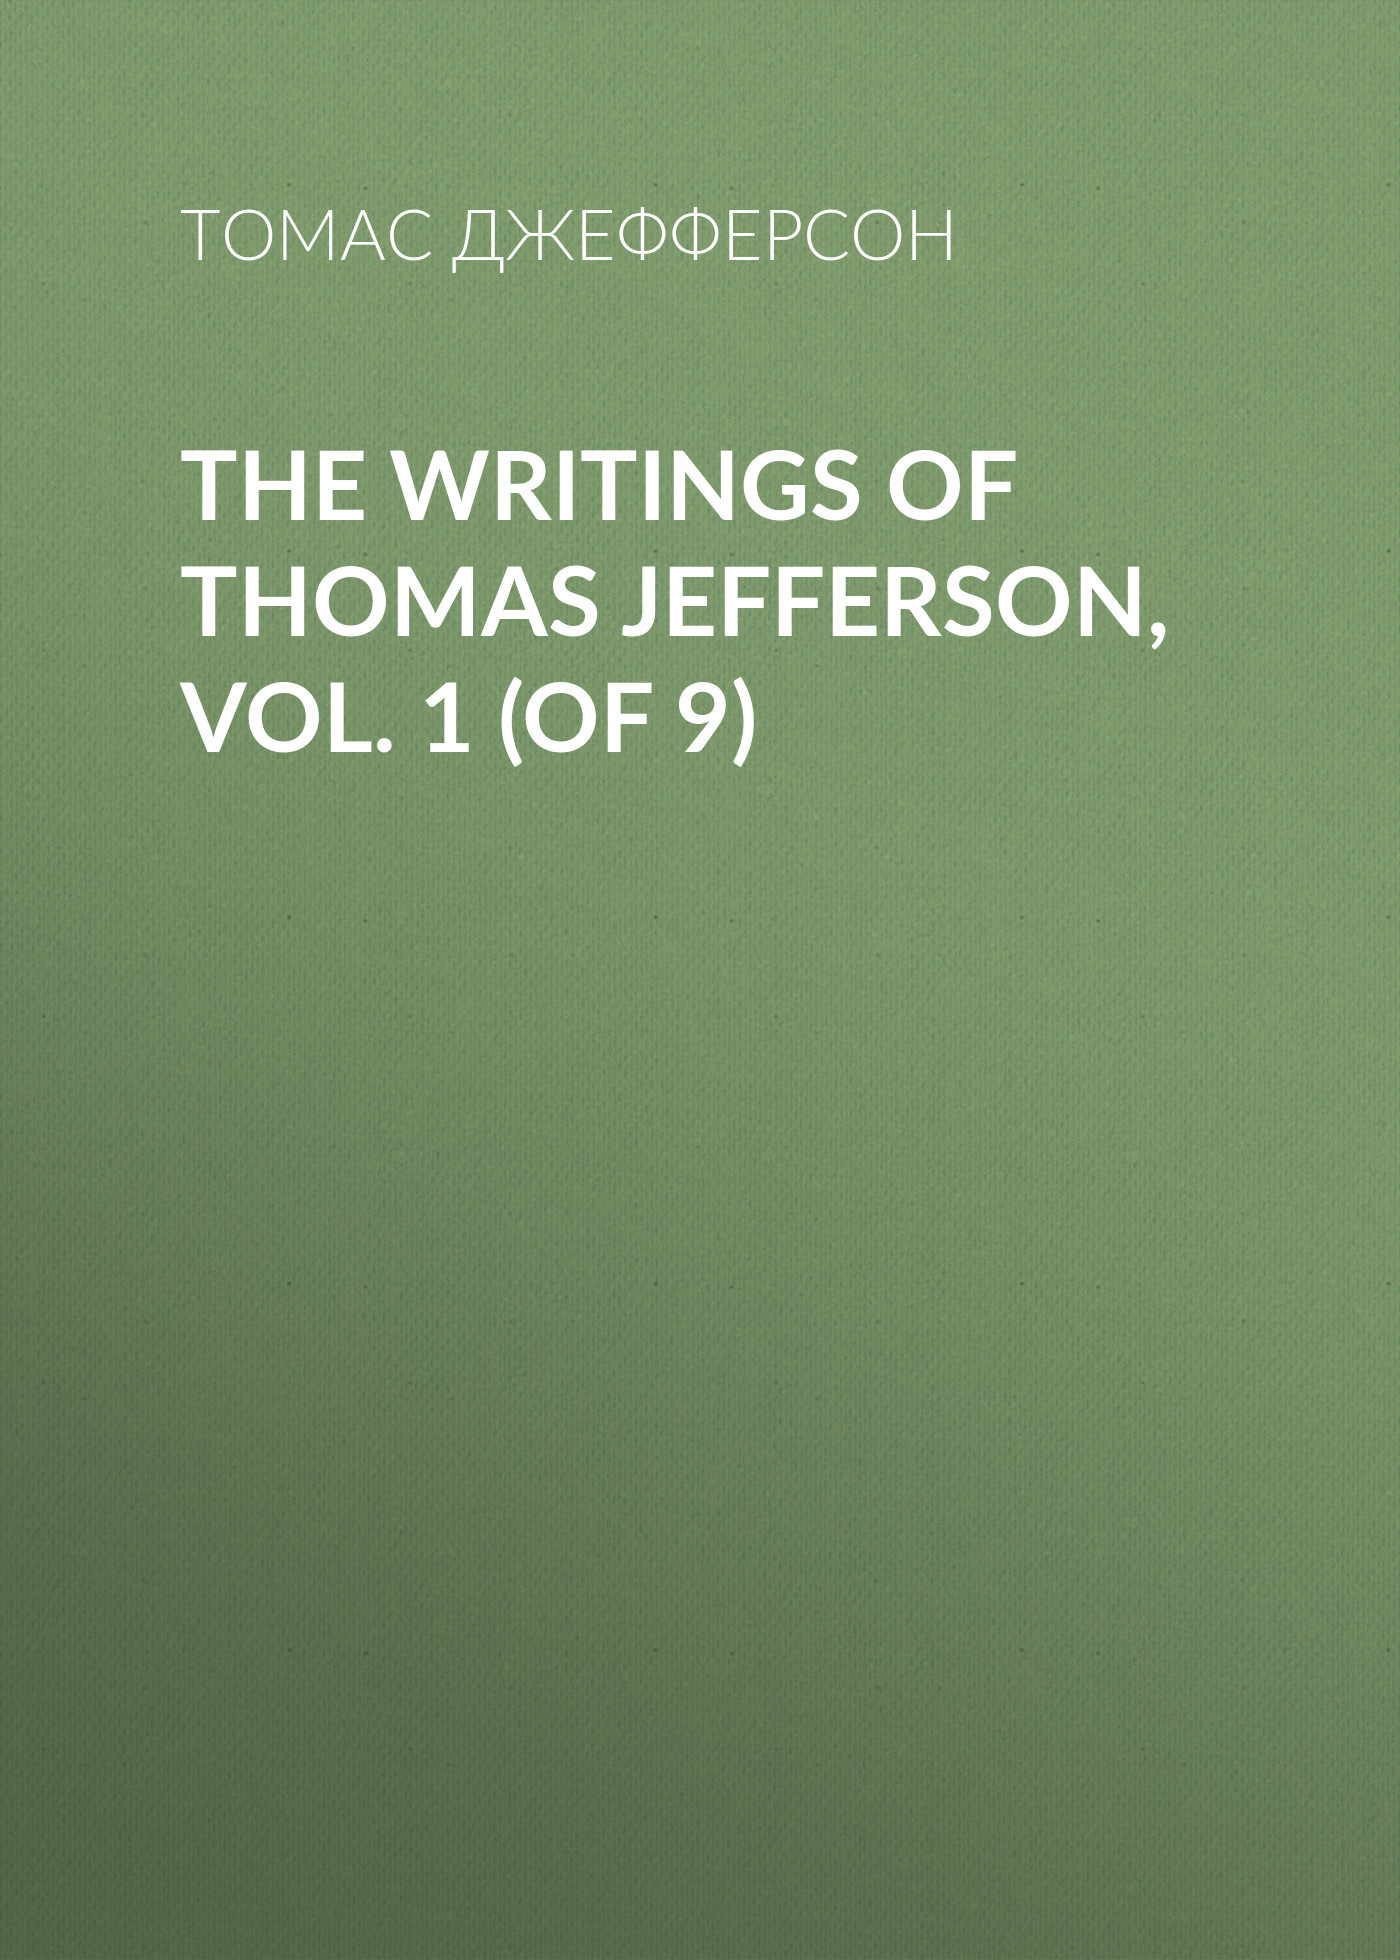 Томас Джефферсон The Writings of Thomas Jefferson, Vol. 1 (of 9) jack of fables vol 9 the end